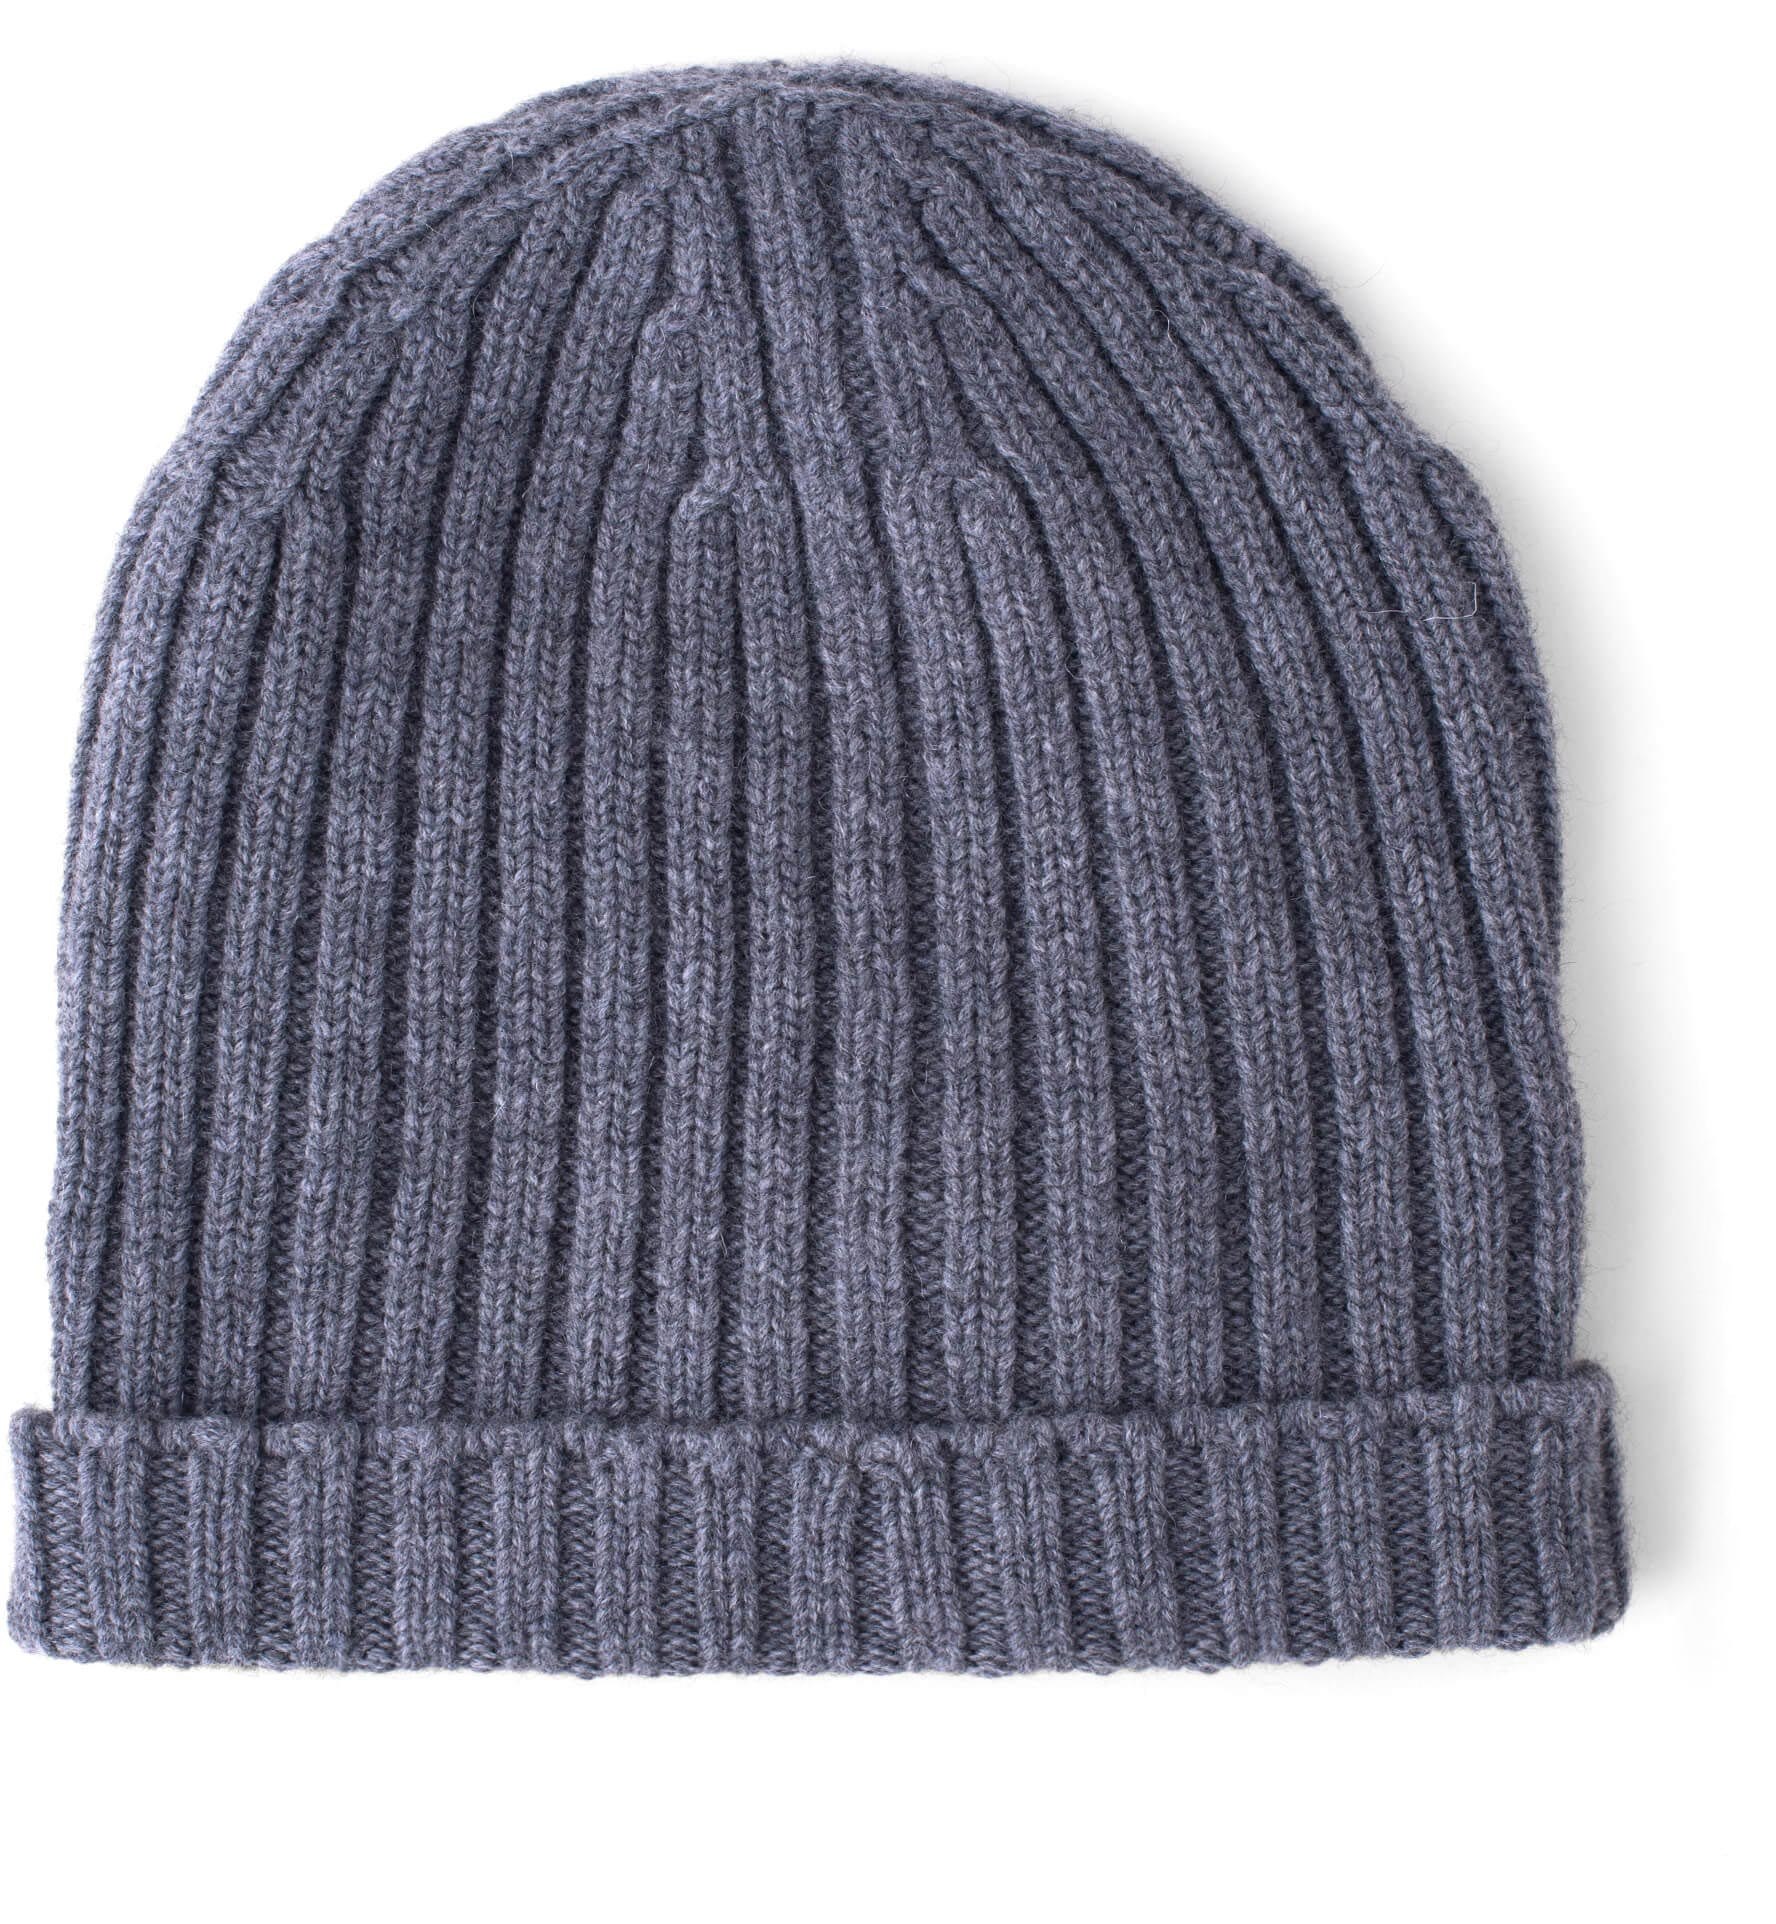 Zoom Image of Grey Wool and Cashmere Italian Knit Hat